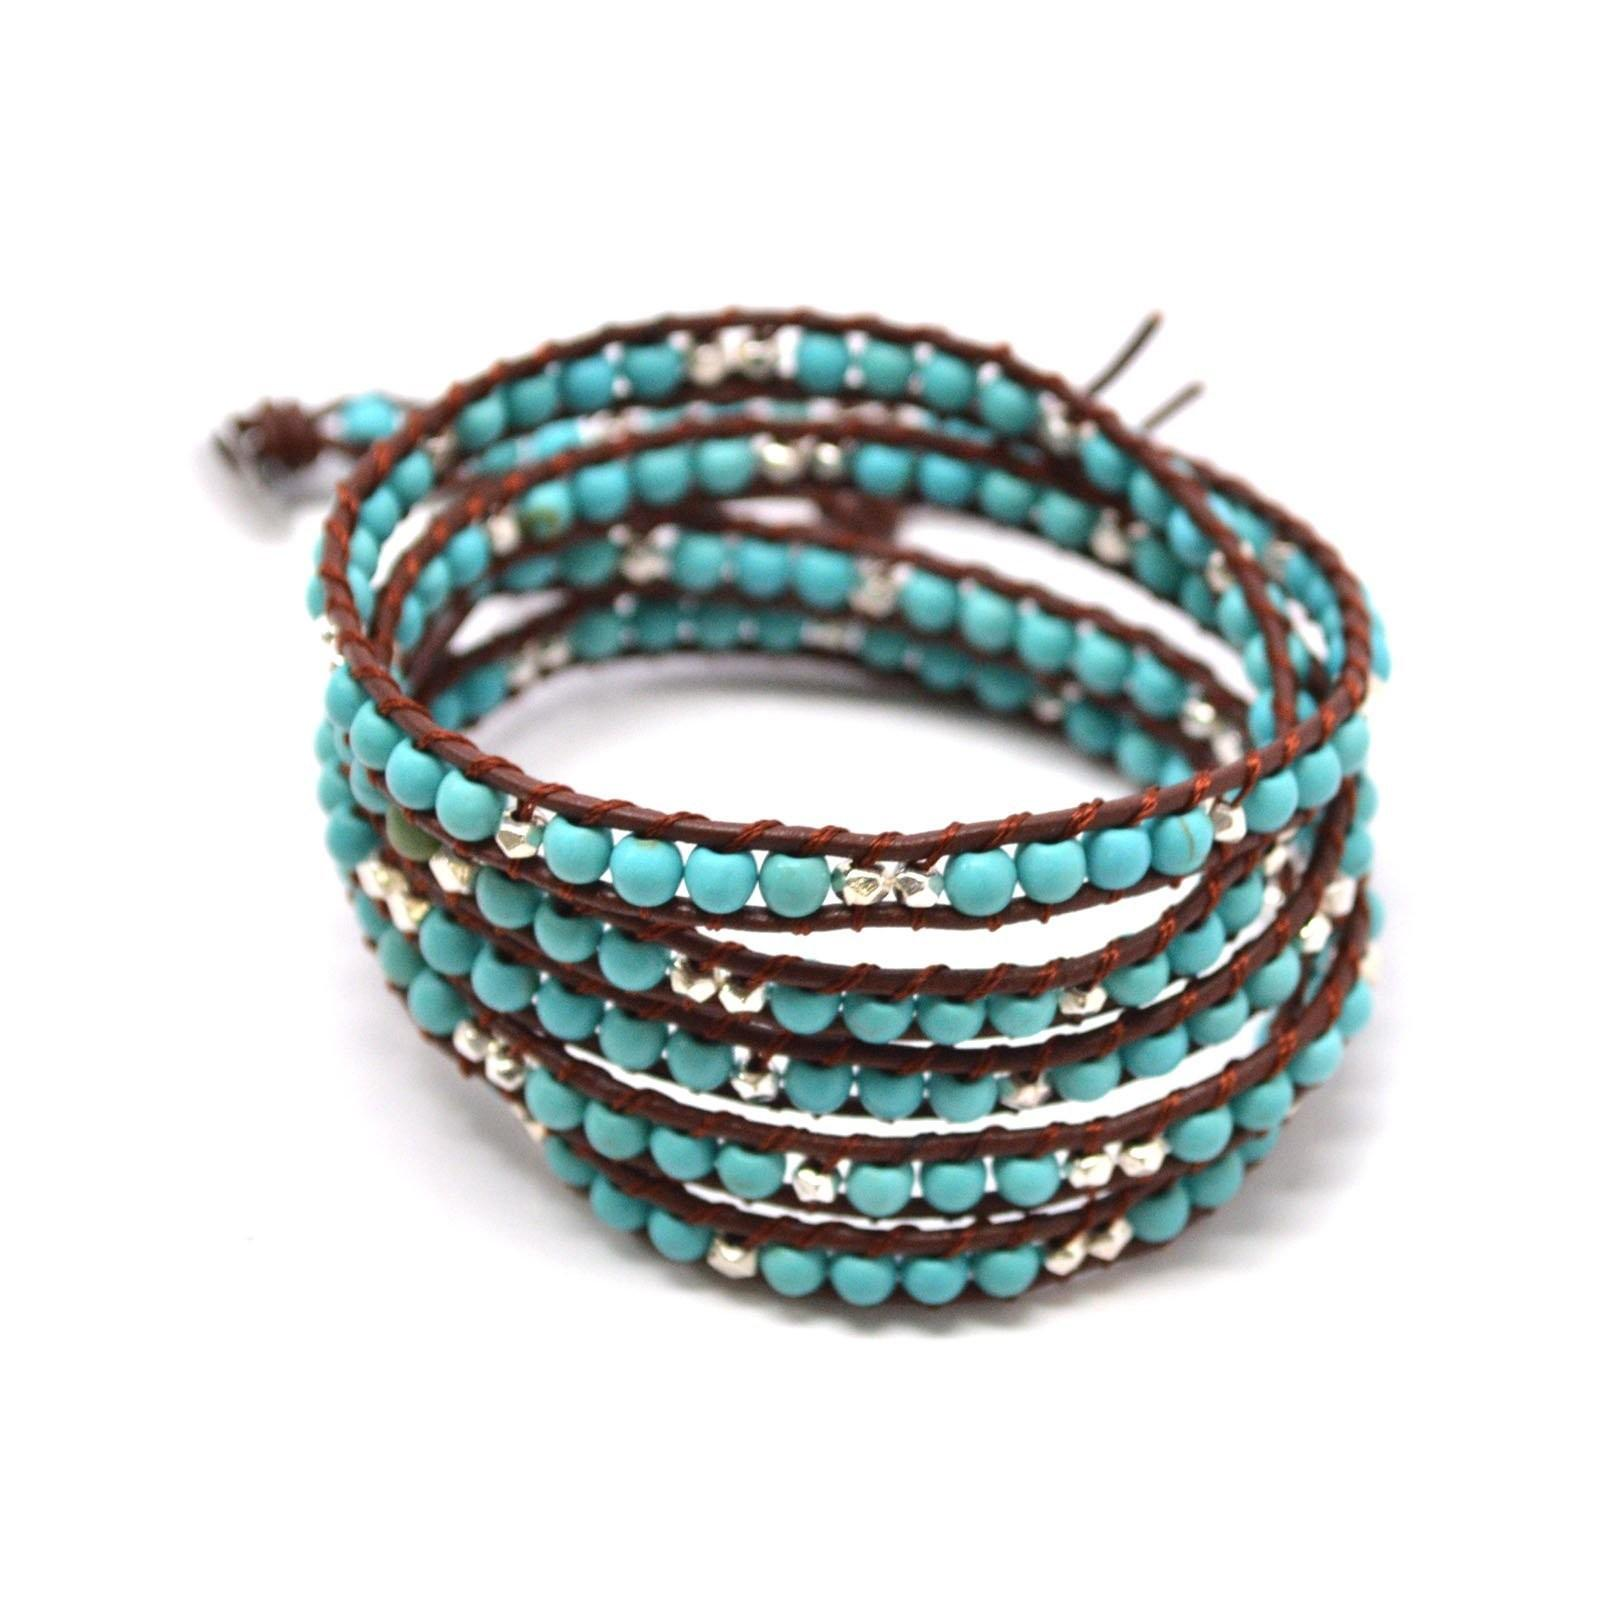 Trendy Turquoise Metallic Beaded Leather Wrap Bohemian